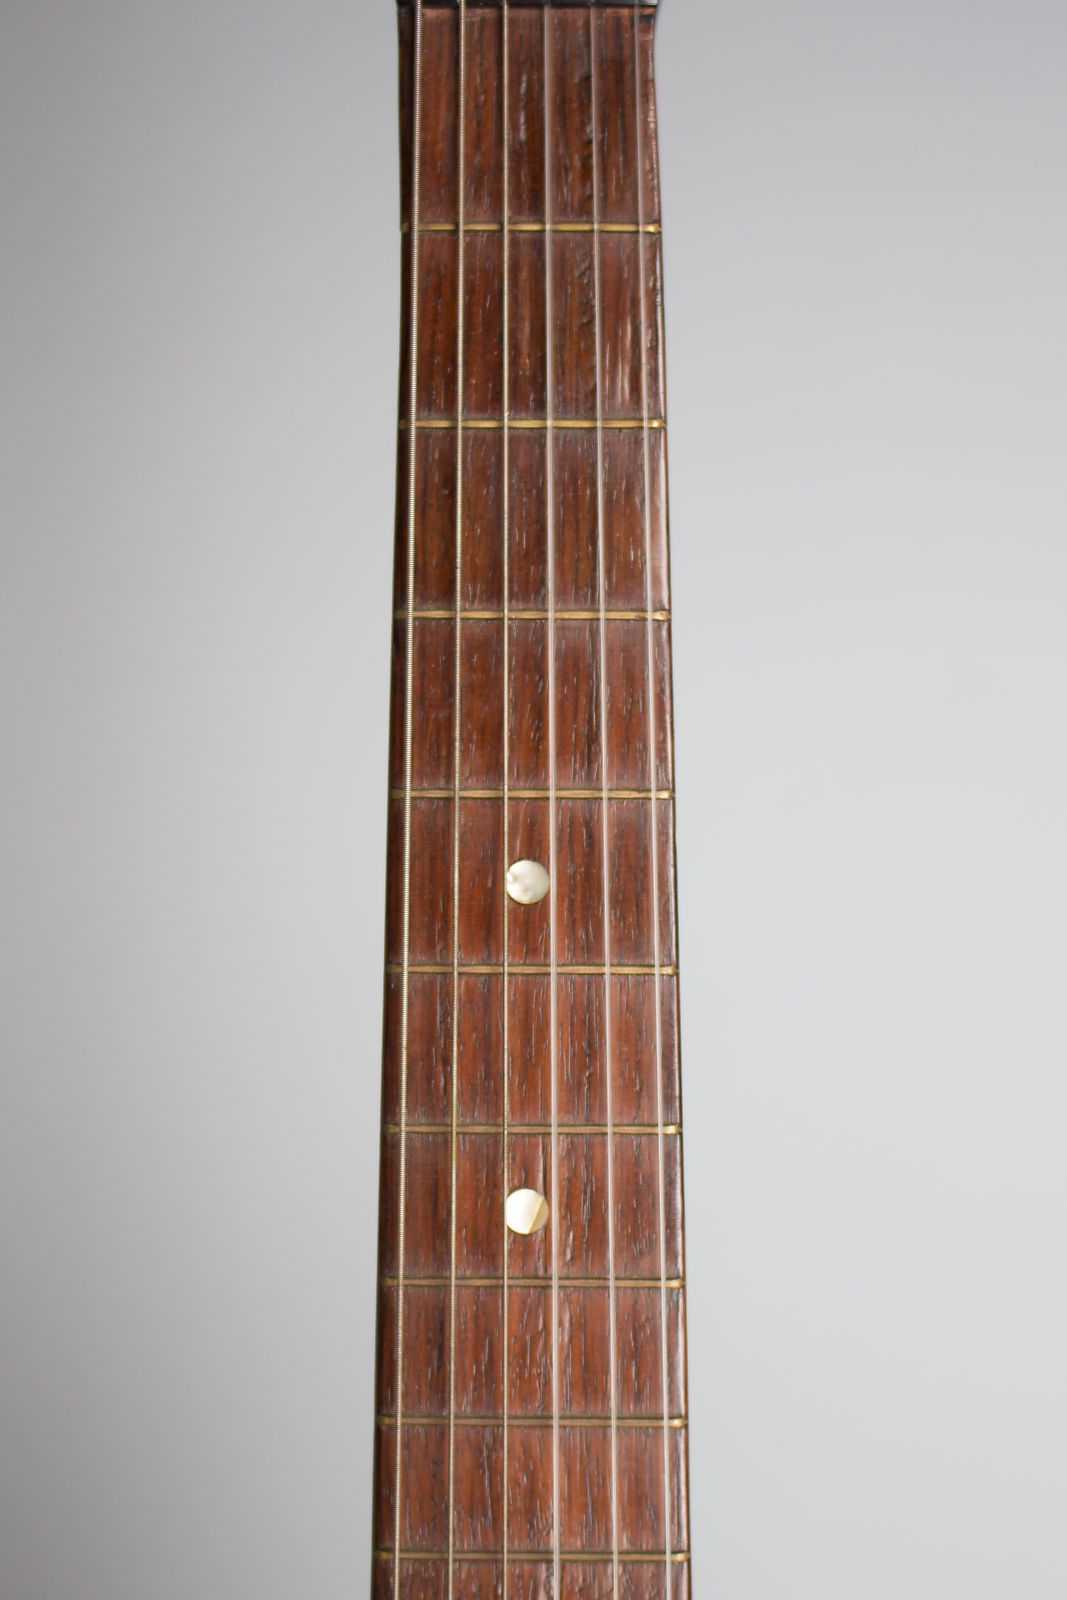 Romantic Guitar, labeled W. Kieser,  c. mid 19th century, NO CASE case.